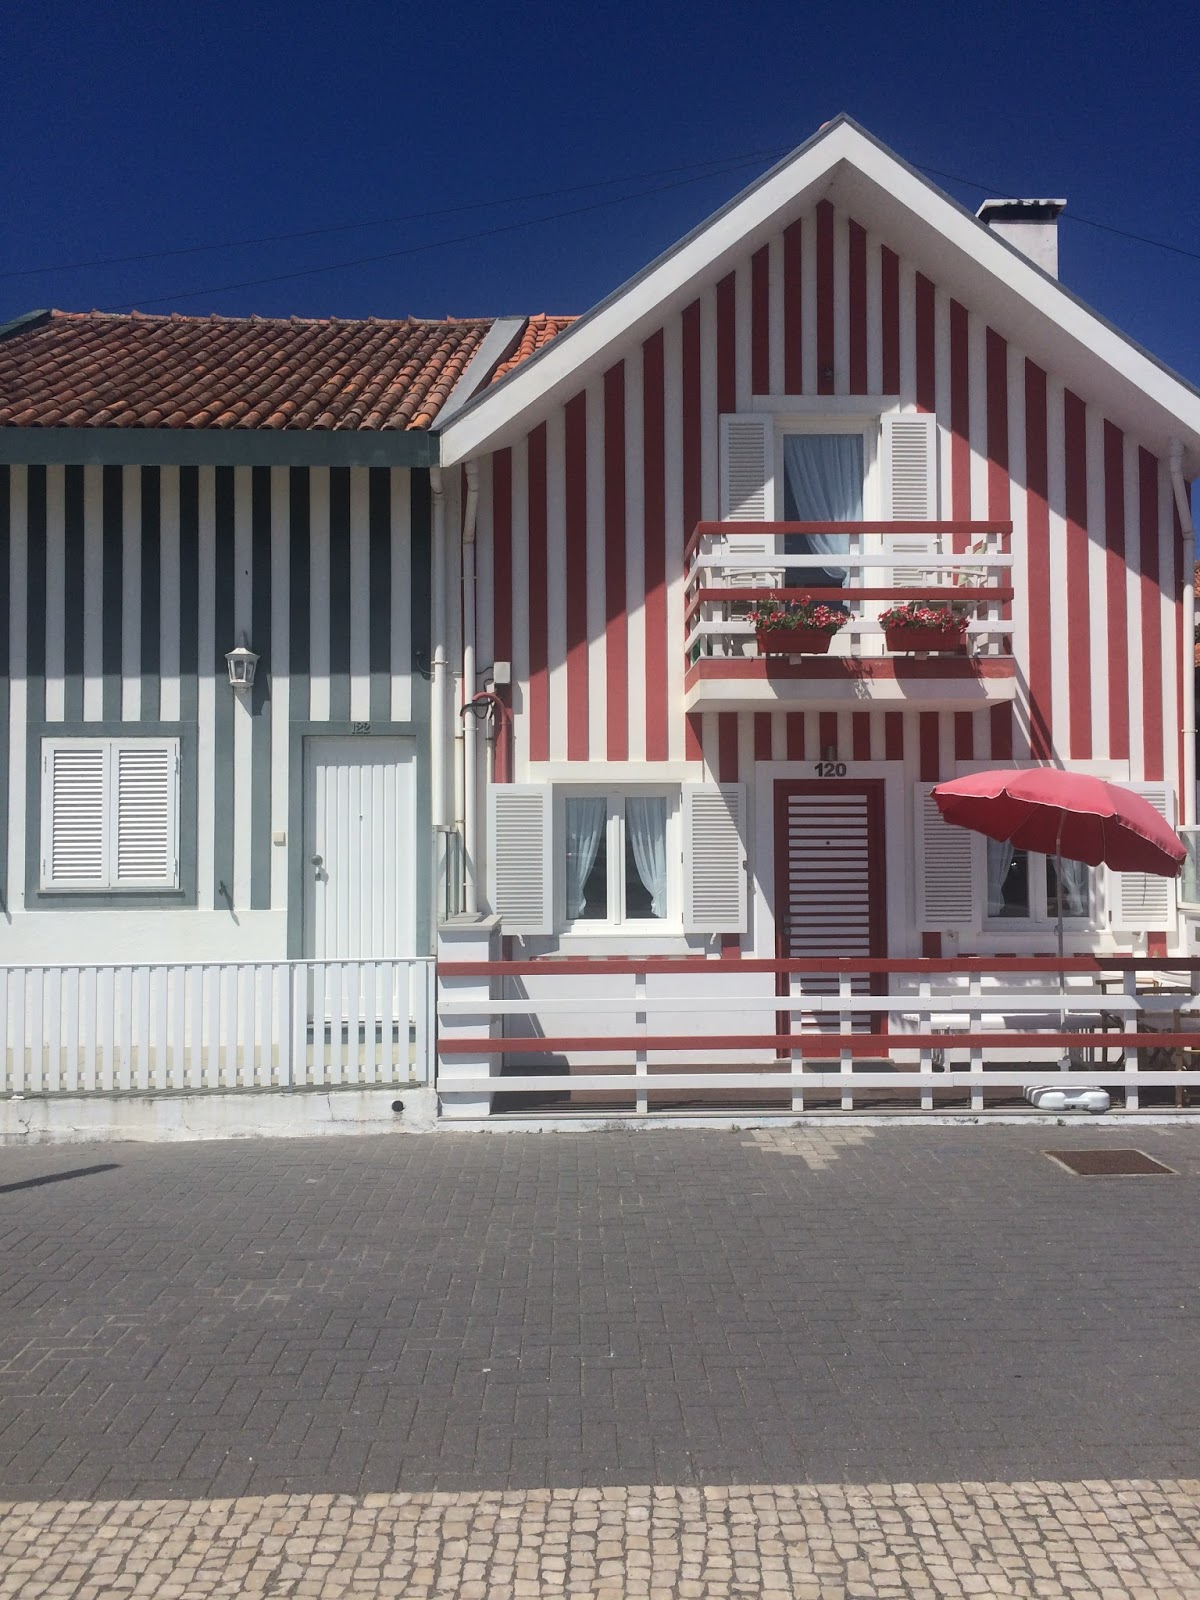 Aveiro, Portugal, striped houses, what to see in Costa Nova, travel blog